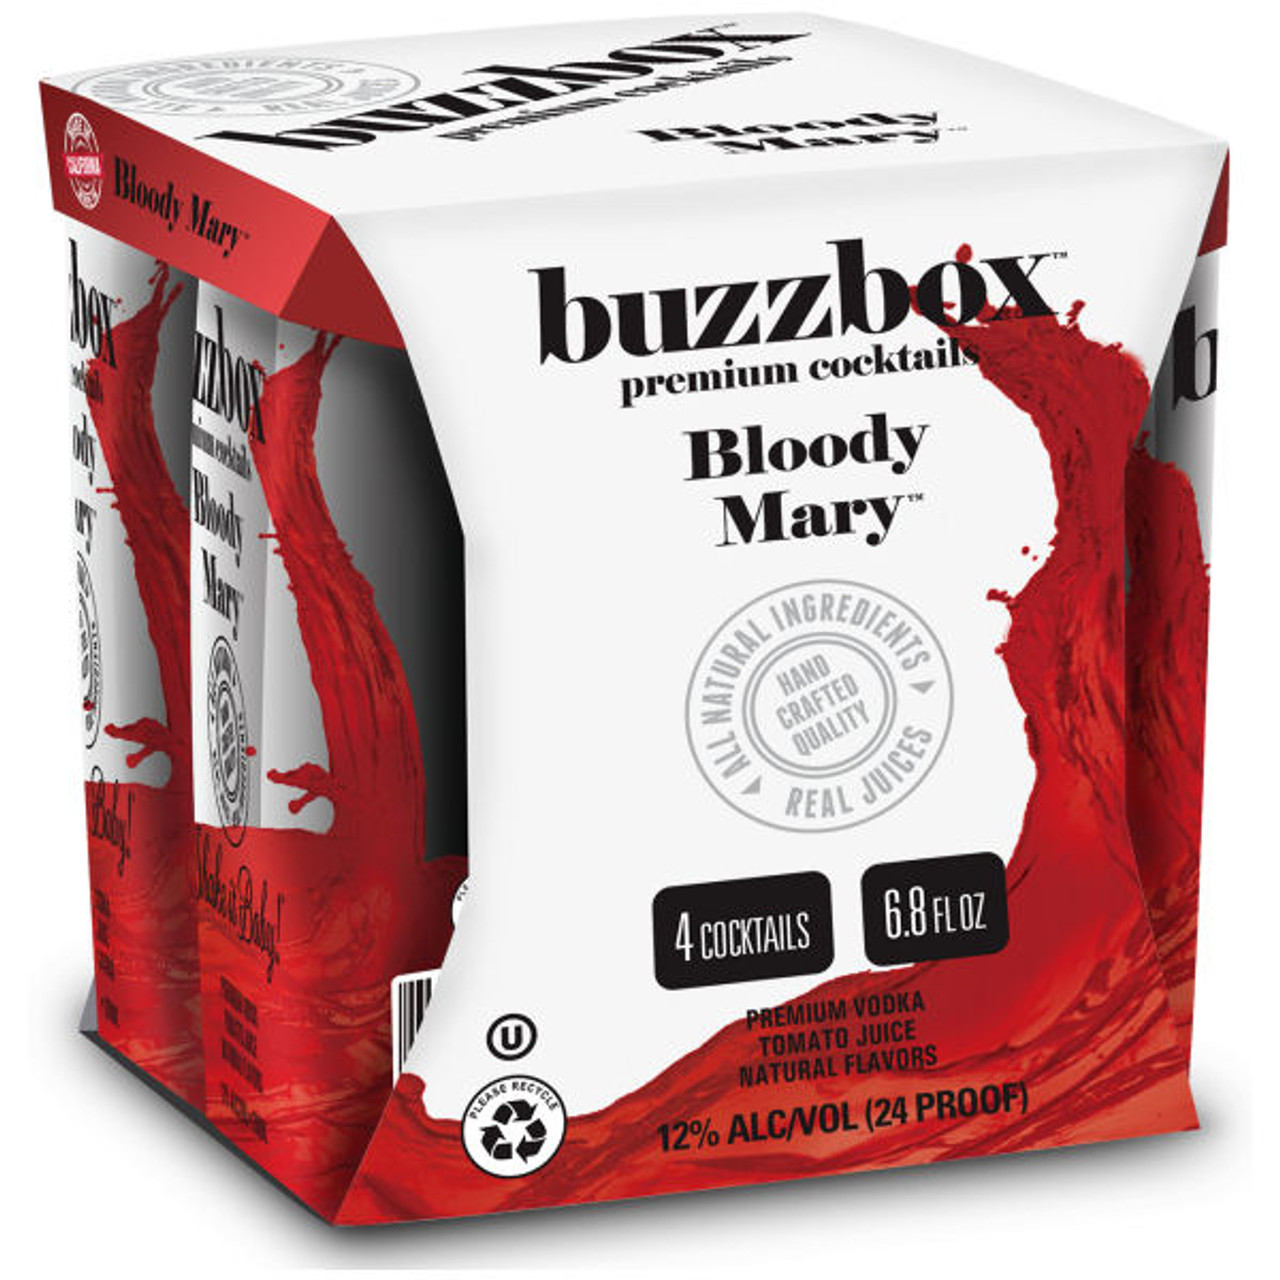 Buzzbox Bloody Mary Cocktails 200ml 4 Pack